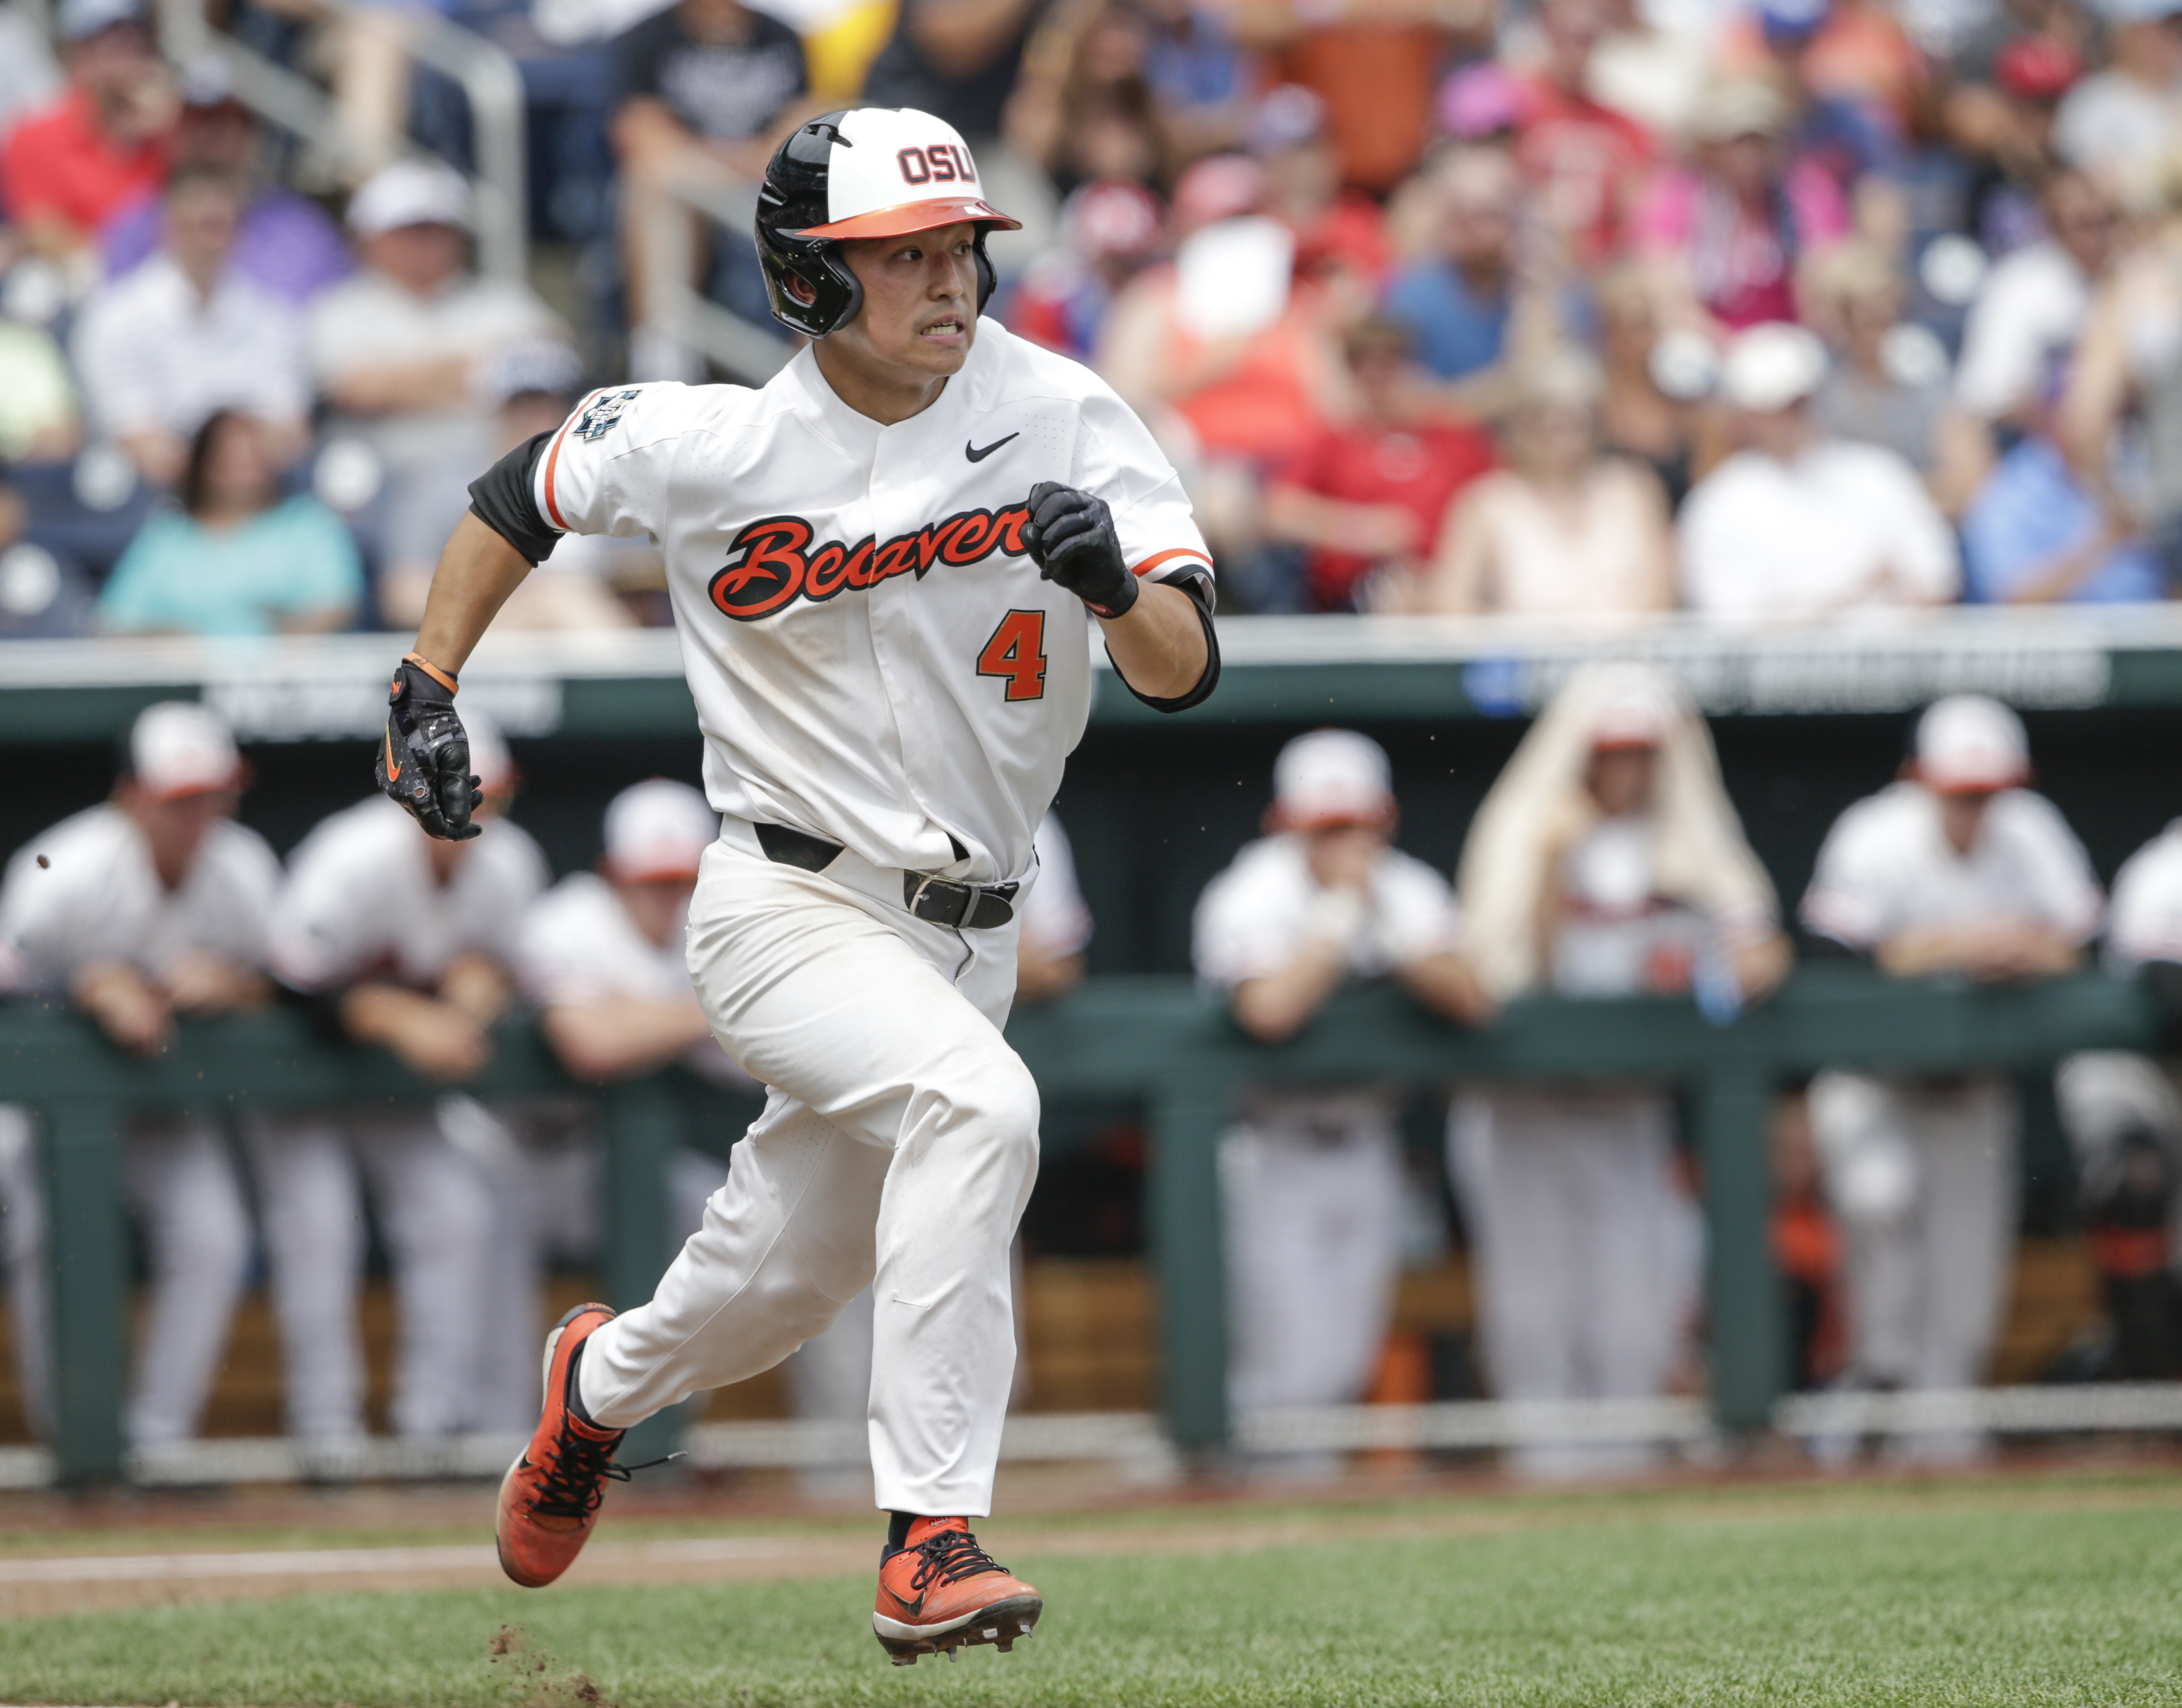 Oregon State's Steven Kwan runs to first base on a one-run single during the second inning of an NCAA mens College World Series baseball game against Cal State Fullerton in Omaha, Neb., Saturday, June 17, 2017. Michael Gretler scored on the play. (AP Photo/Nati Harnik)